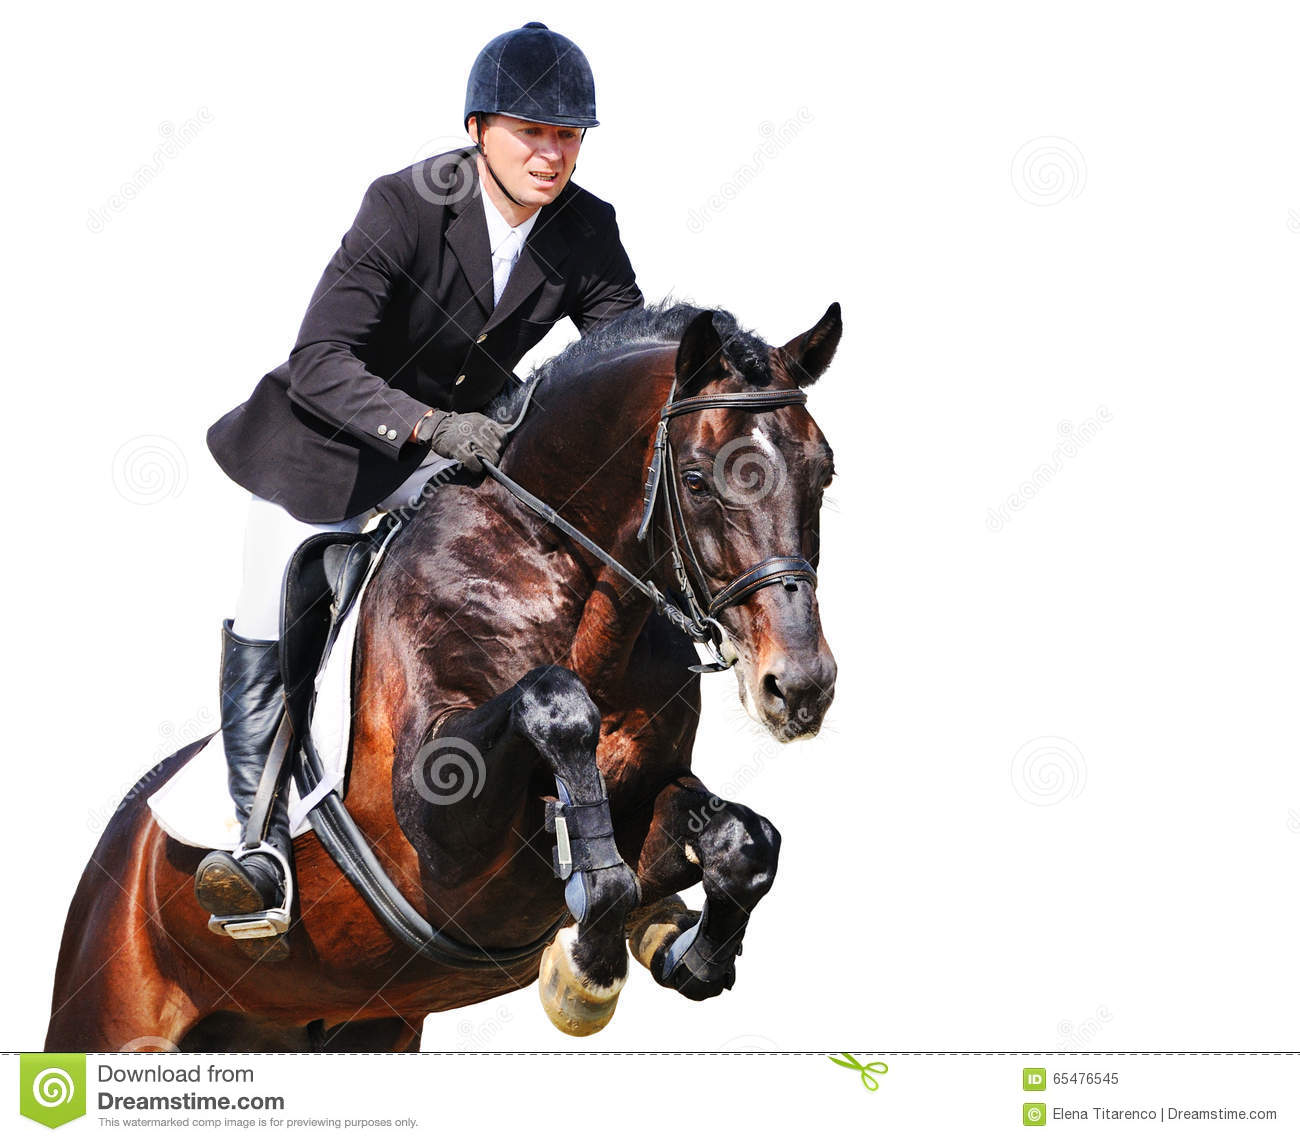 Equestrian: rider with bay horse in jumping show, isolated